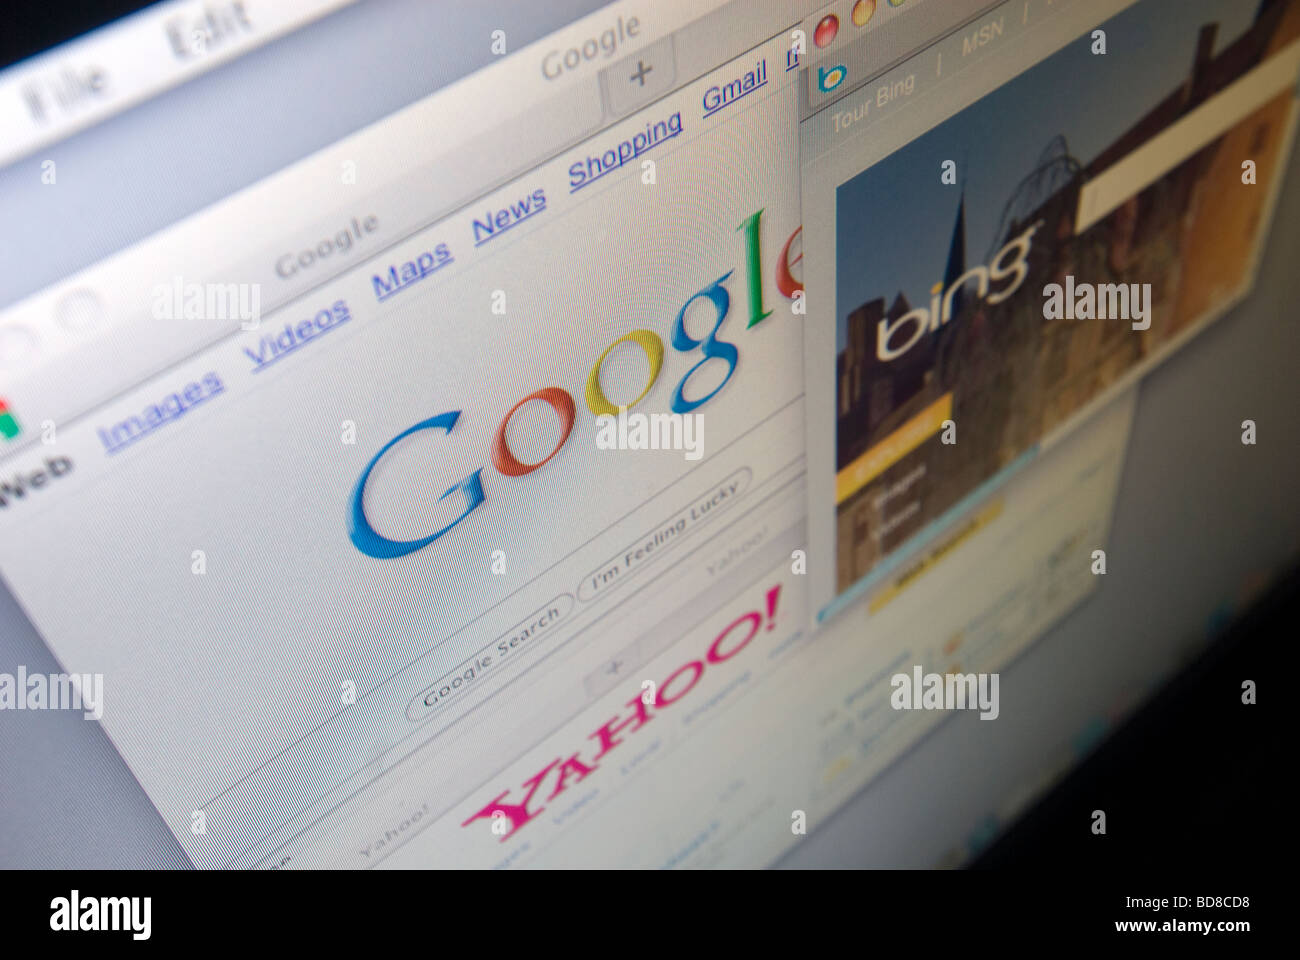 Microsoft s Bing and Google search engines are seen on a computer screen - Stock Image